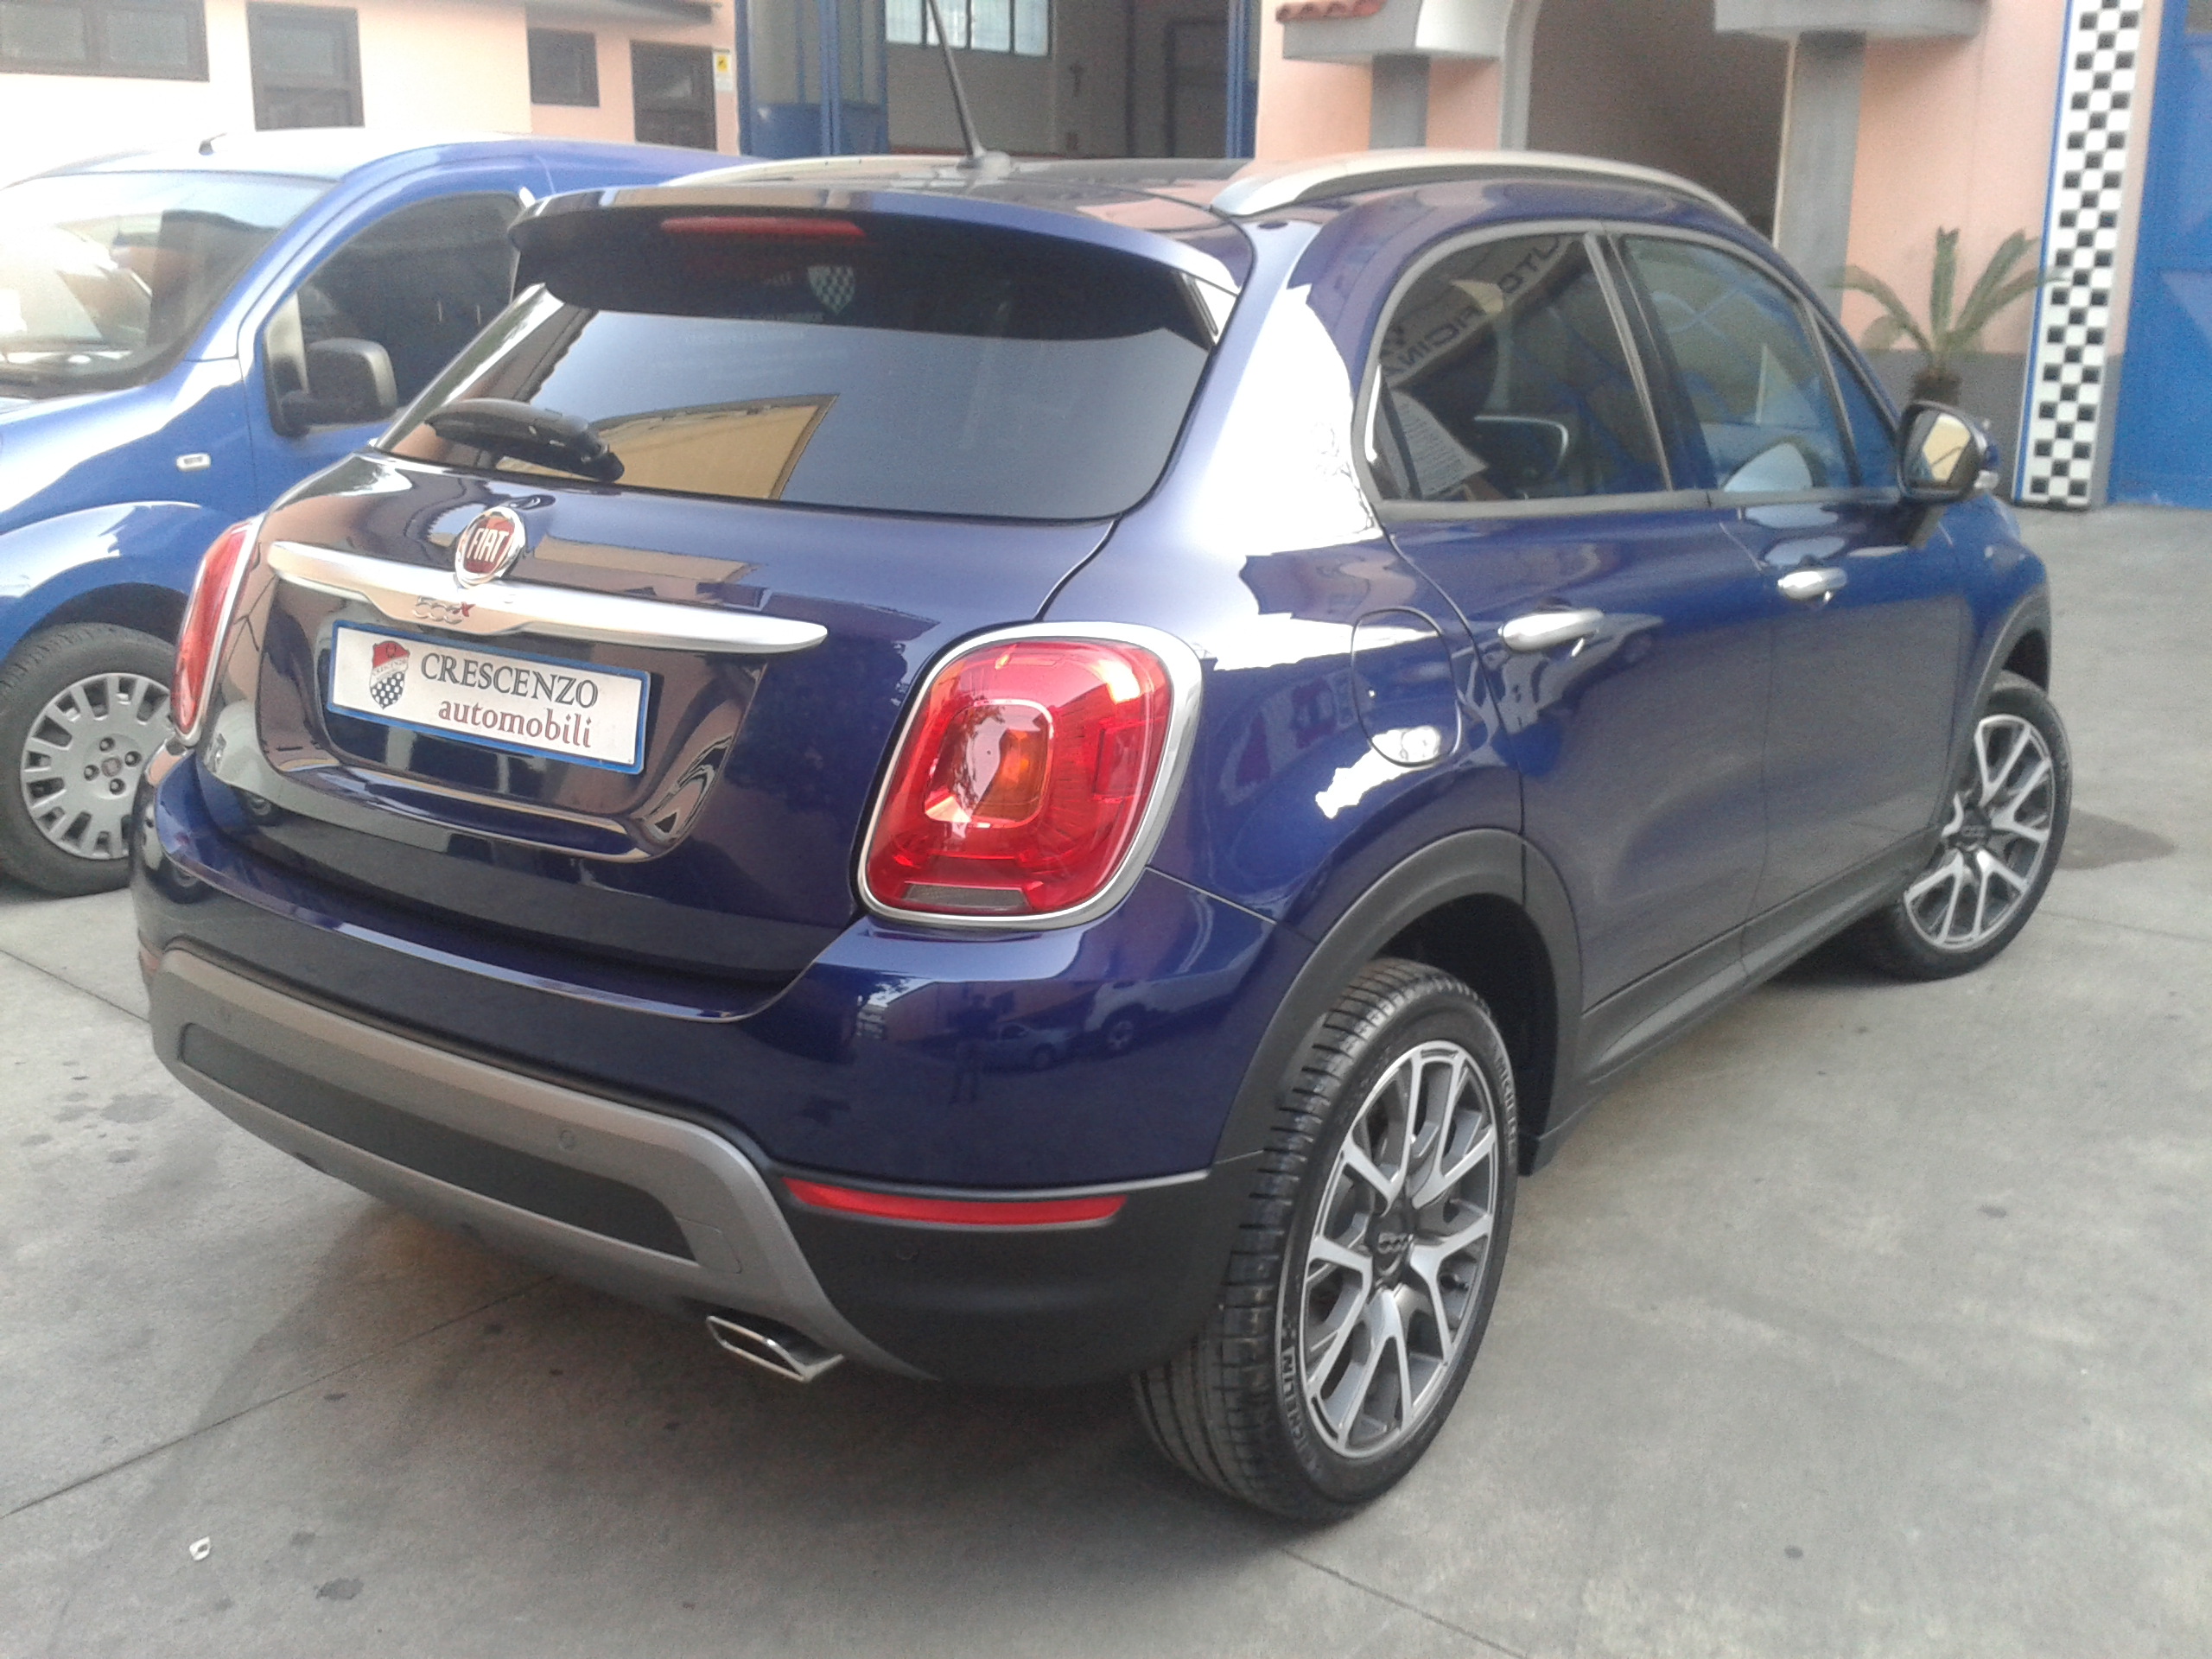 fiat 500x blu venezia automobili image idea. Black Bedroom Furniture Sets. Home Design Ideas